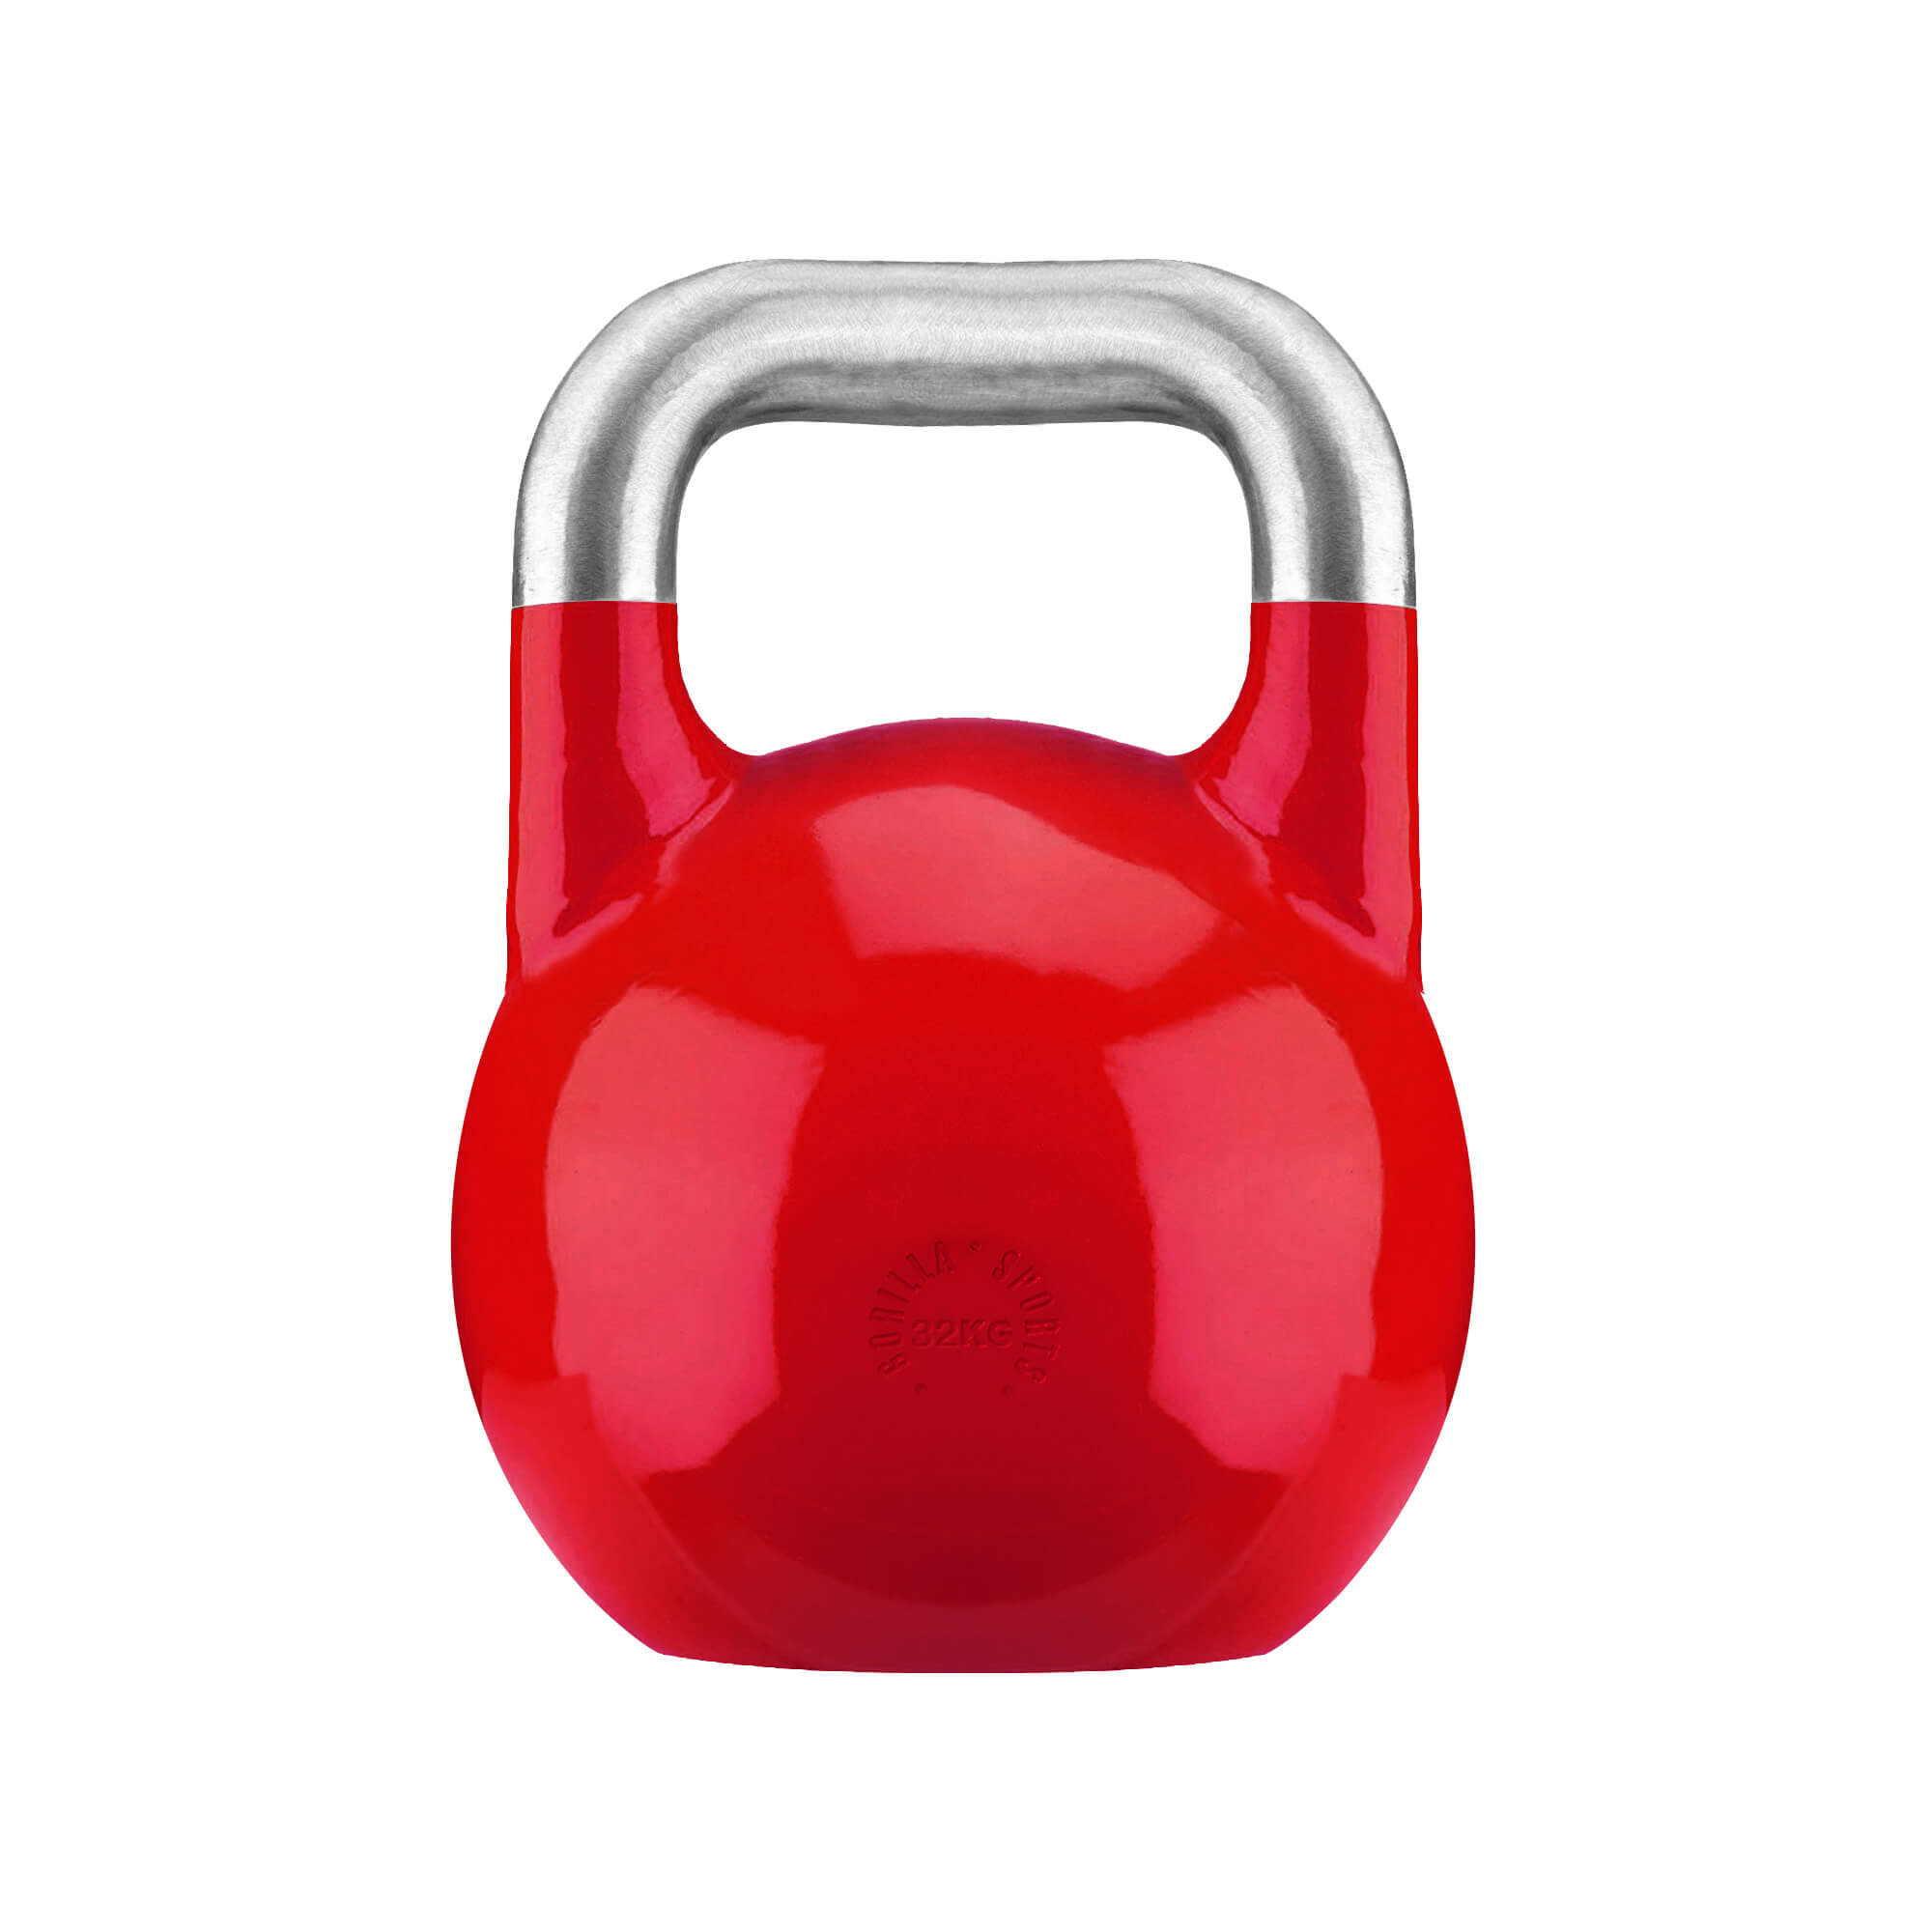 Gorilla Sports Kettlebell Competition Rot 32 kg 100557-00038-0034